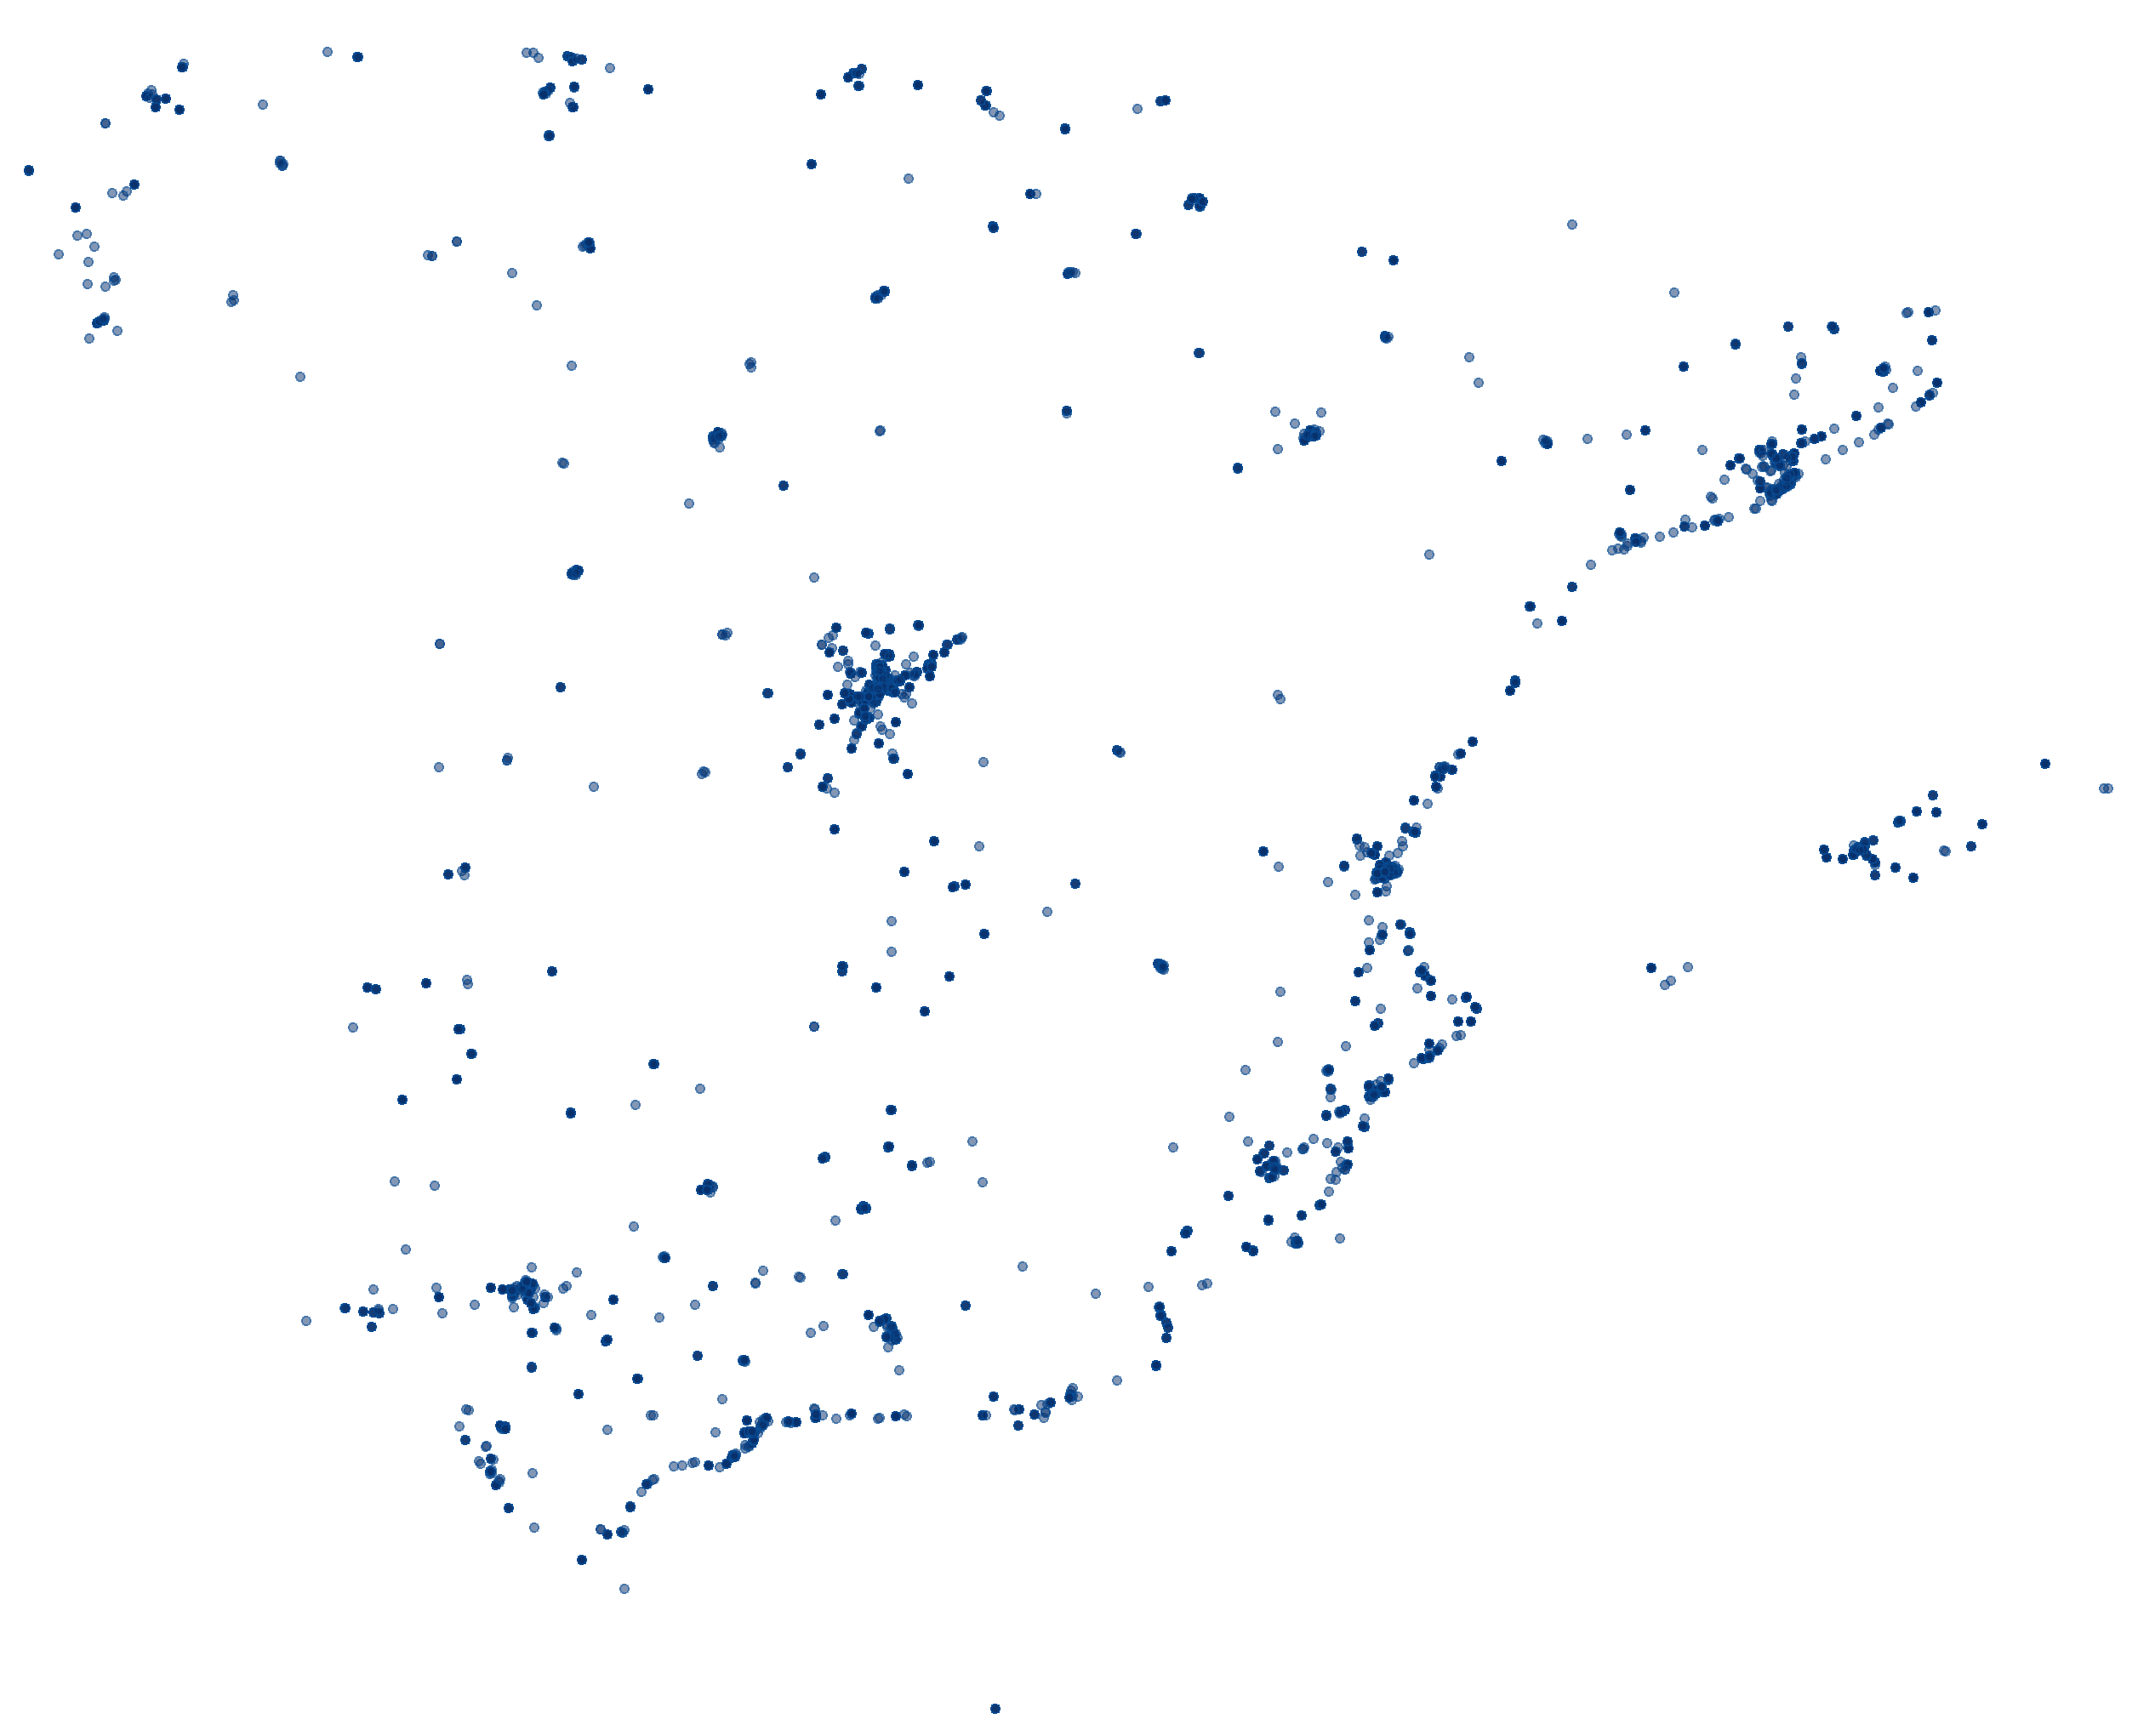 Accessing OpenStreetMap data with R | Dominic Royé